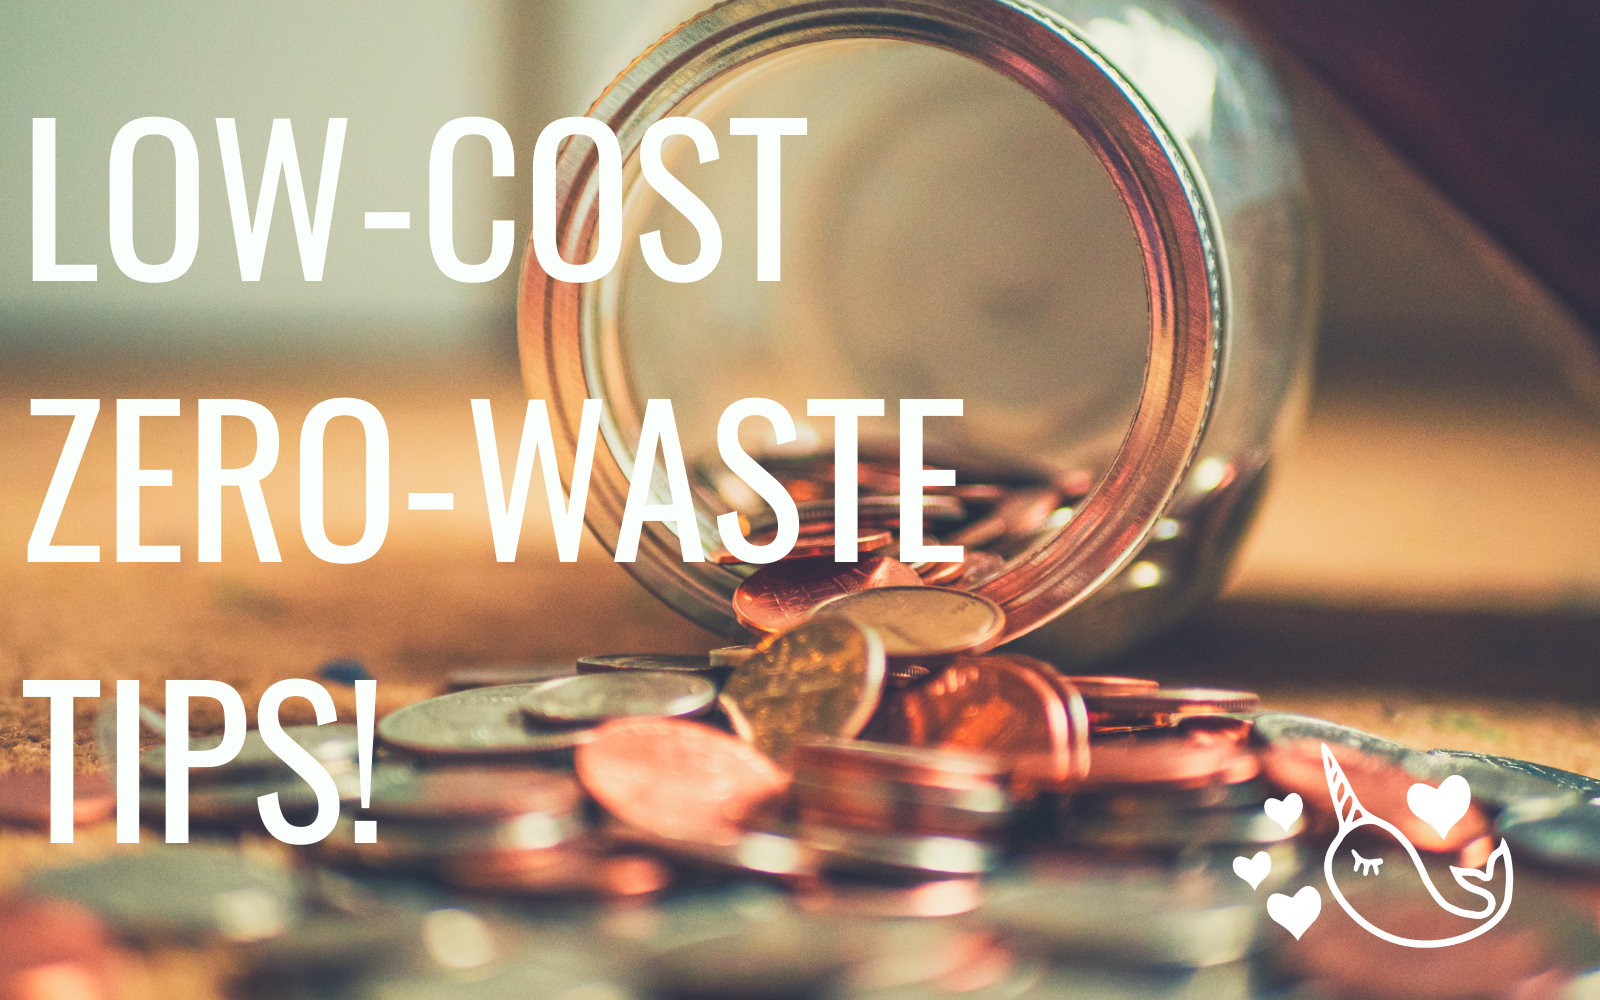 10 Zero-waste swaps that don't cost any money!